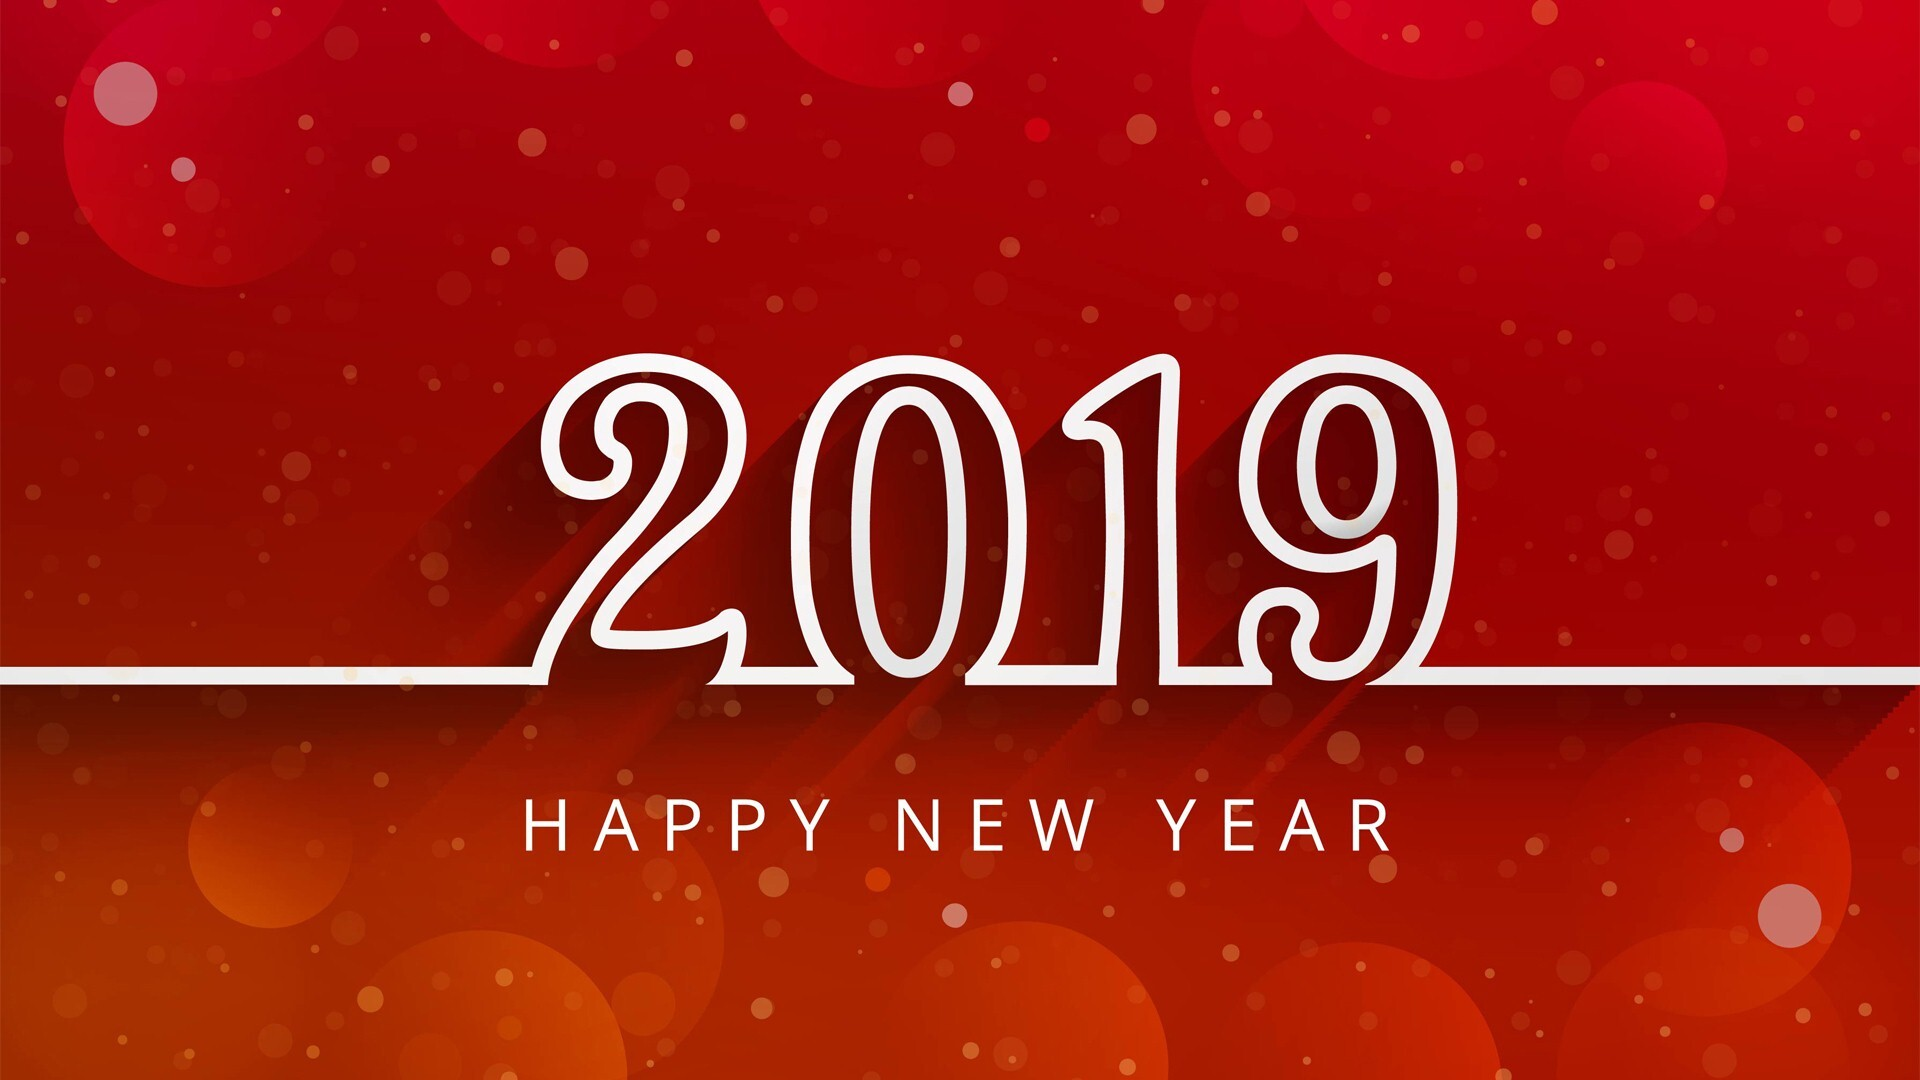 Beautiful New Year 2019 Red HD Wallpaper | HD Wallpapers